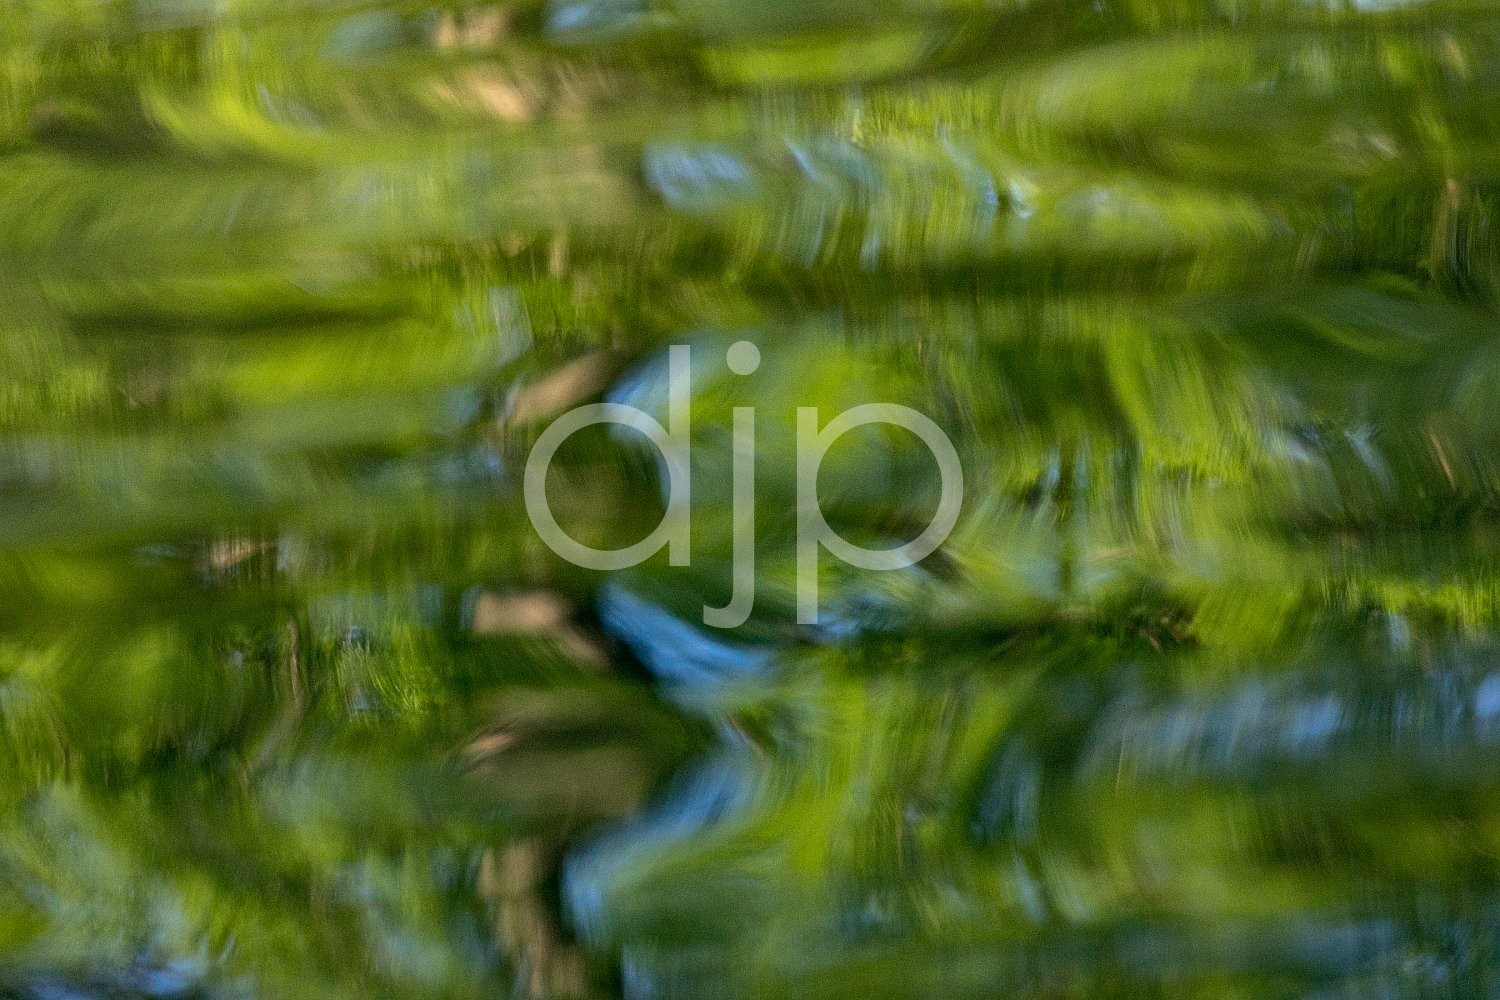 D Jones Photography, Sugar Land, djonesphoto, excursions with djp, long exposure, personal, quarantine, reflections, textures, water, abstract